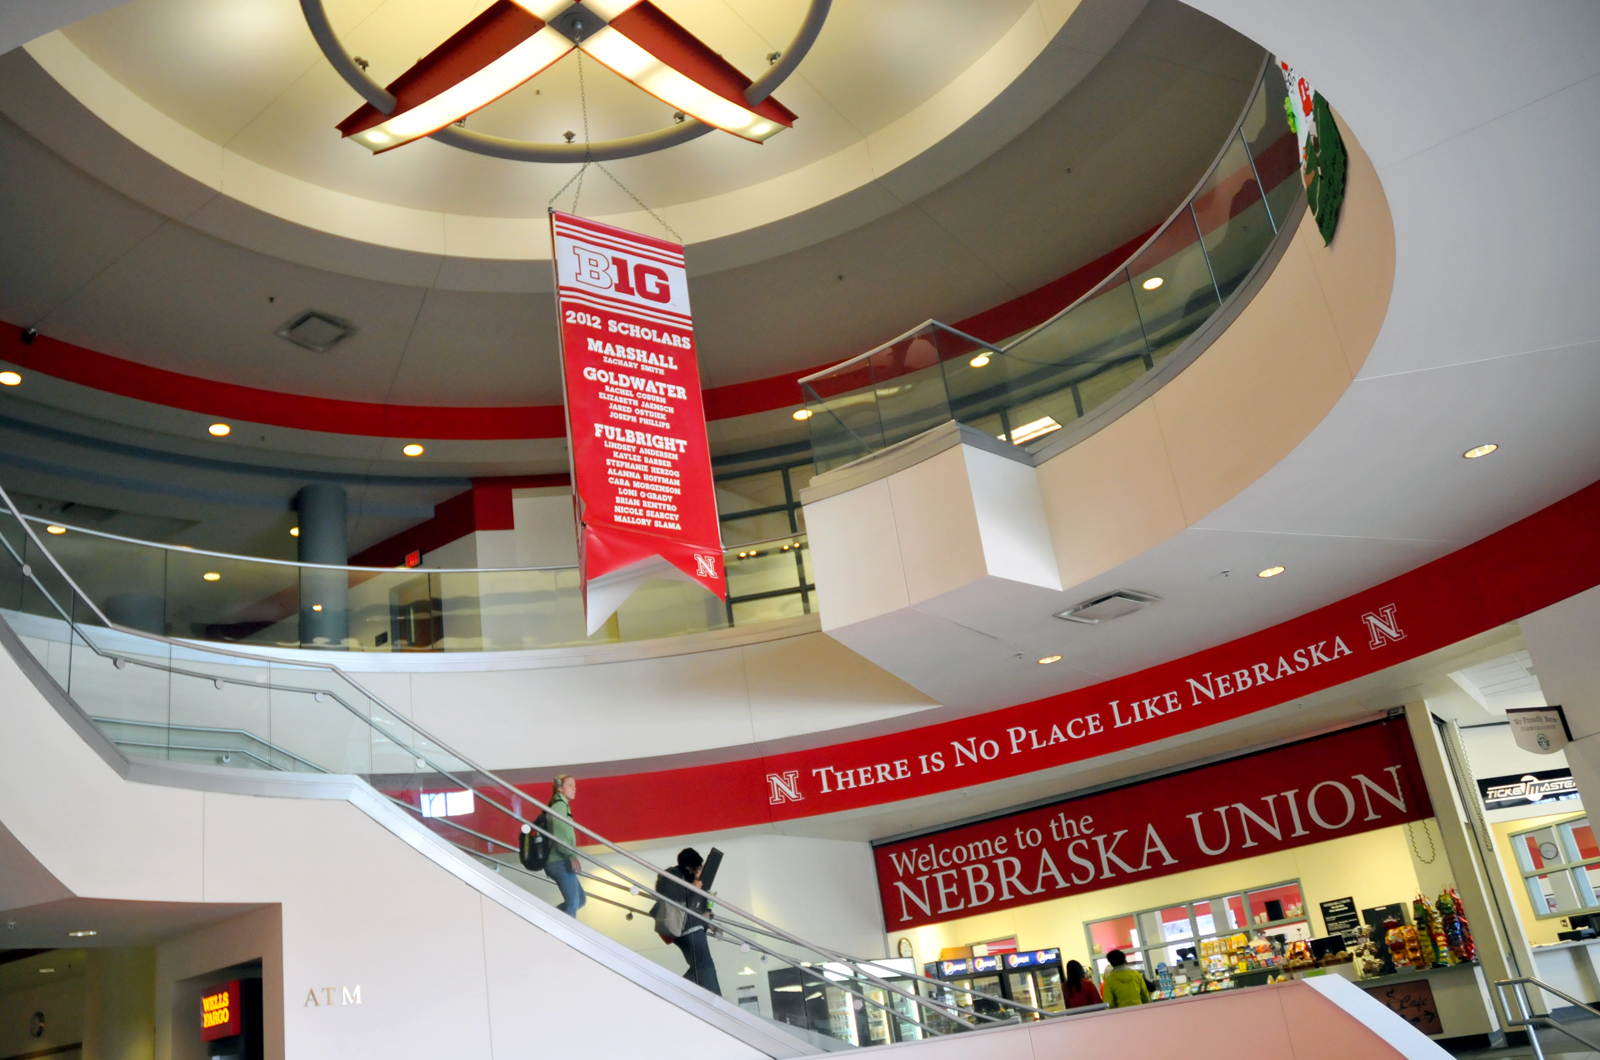 Recent branding efforts have involved adding new paint and text to walls throughout the Nebraska Union.